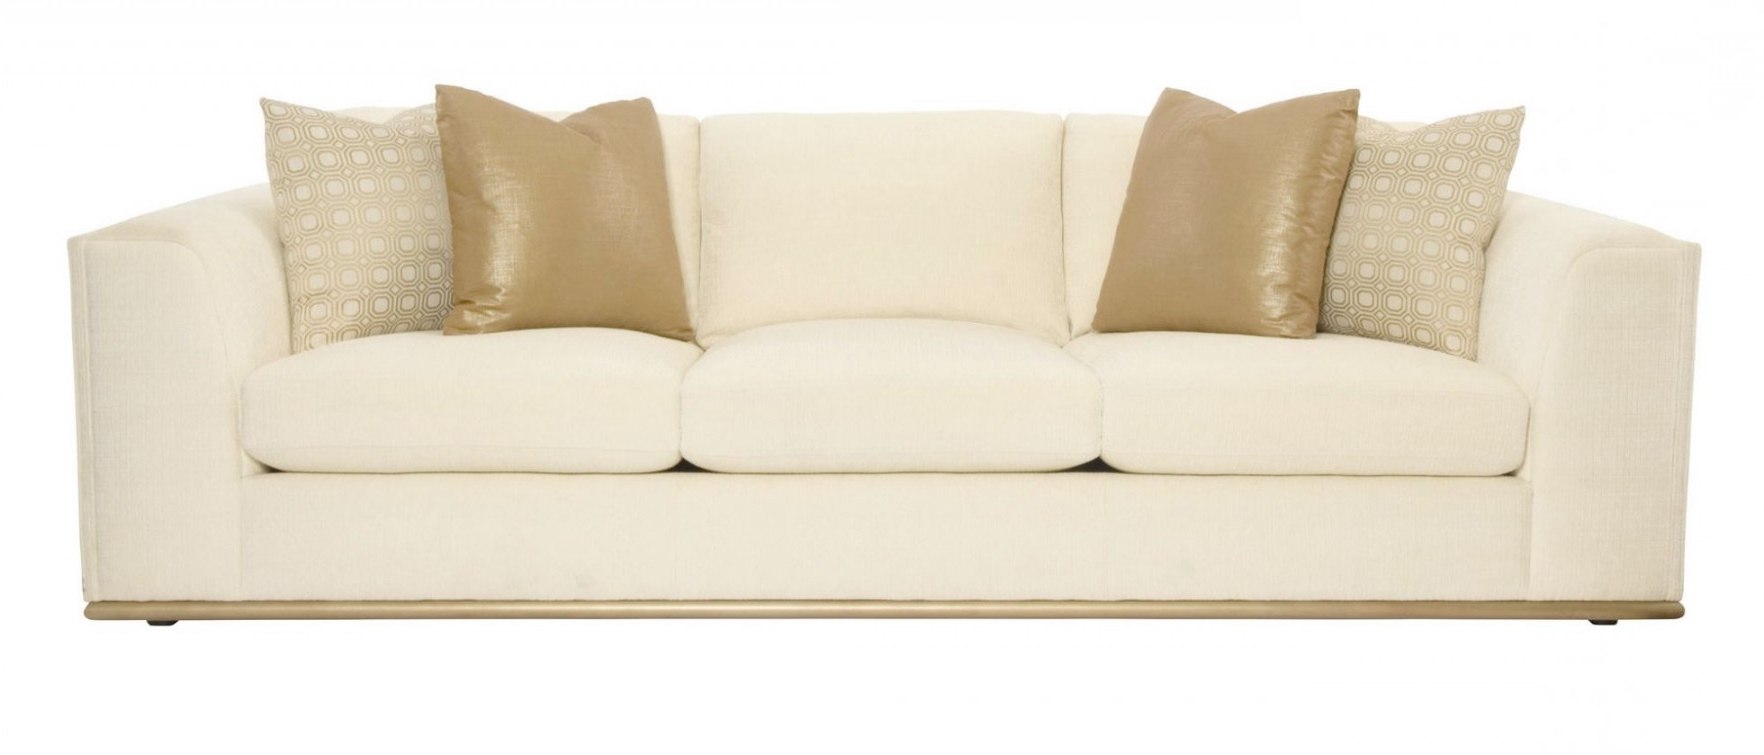 2019 Dillards Sectional Sofas Throughout Leather Sofa Dillards (View 2 of 20)